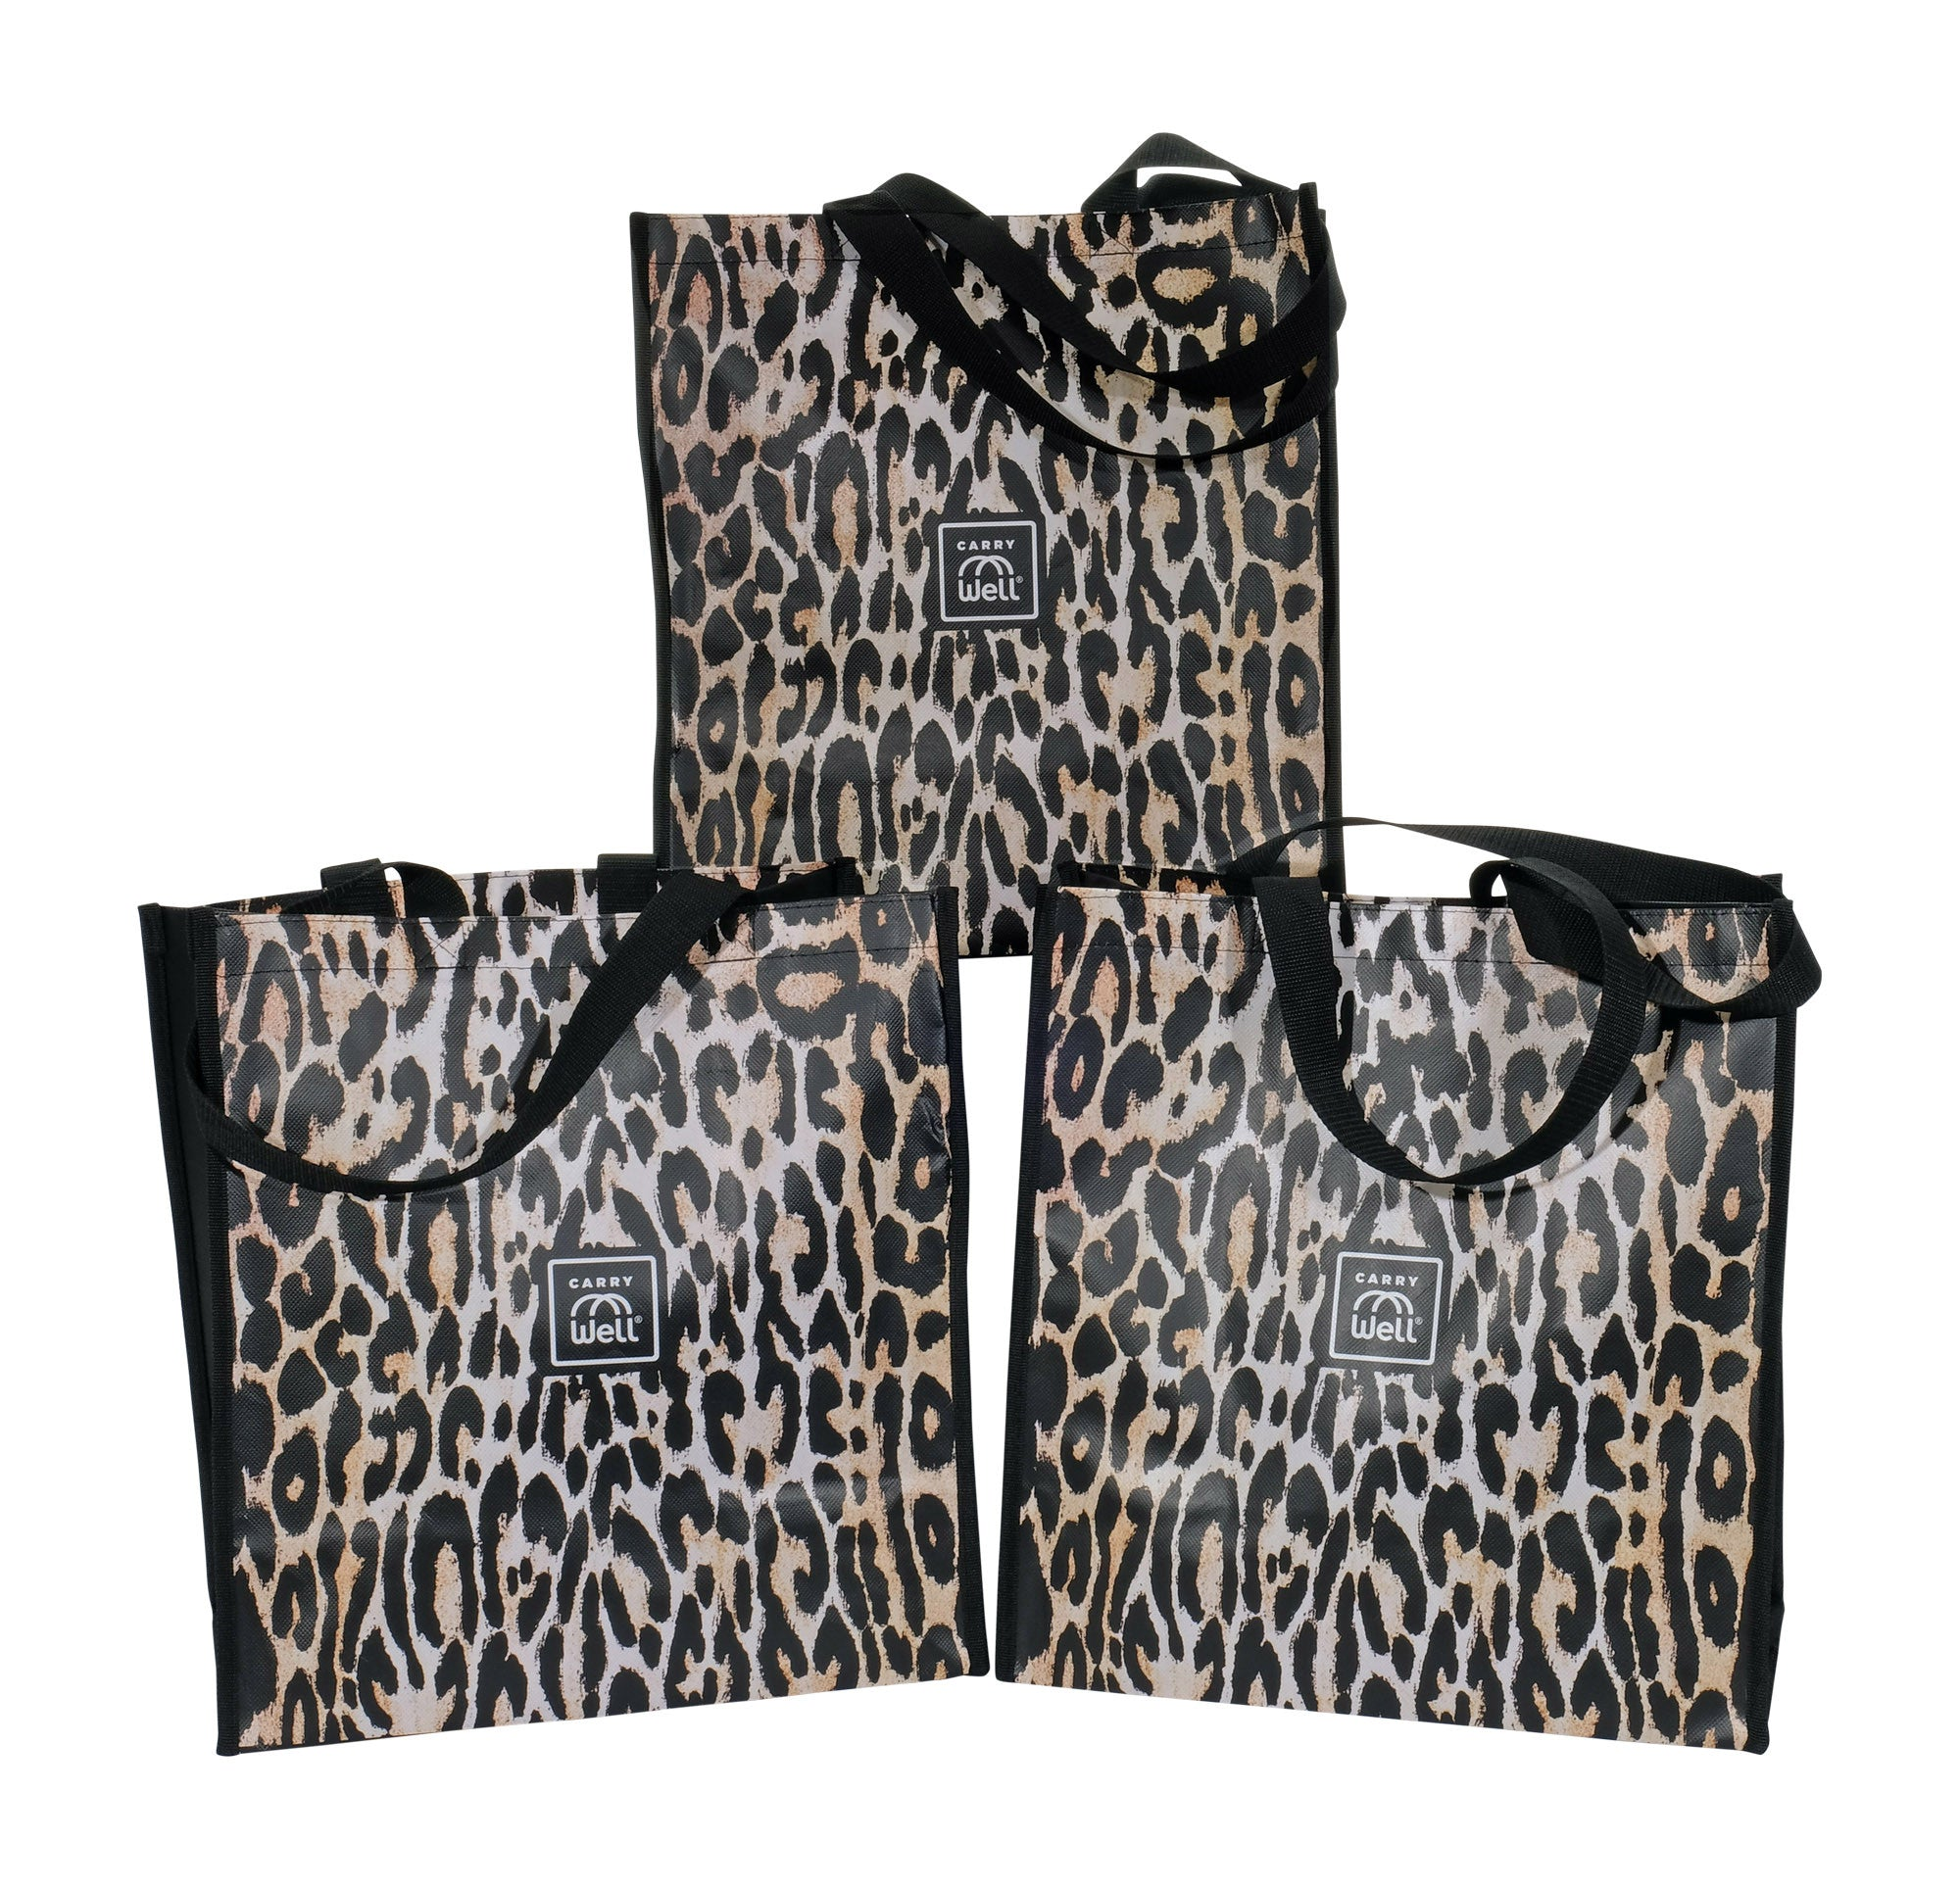 Package of 3 Leopard Print Grocery Bags